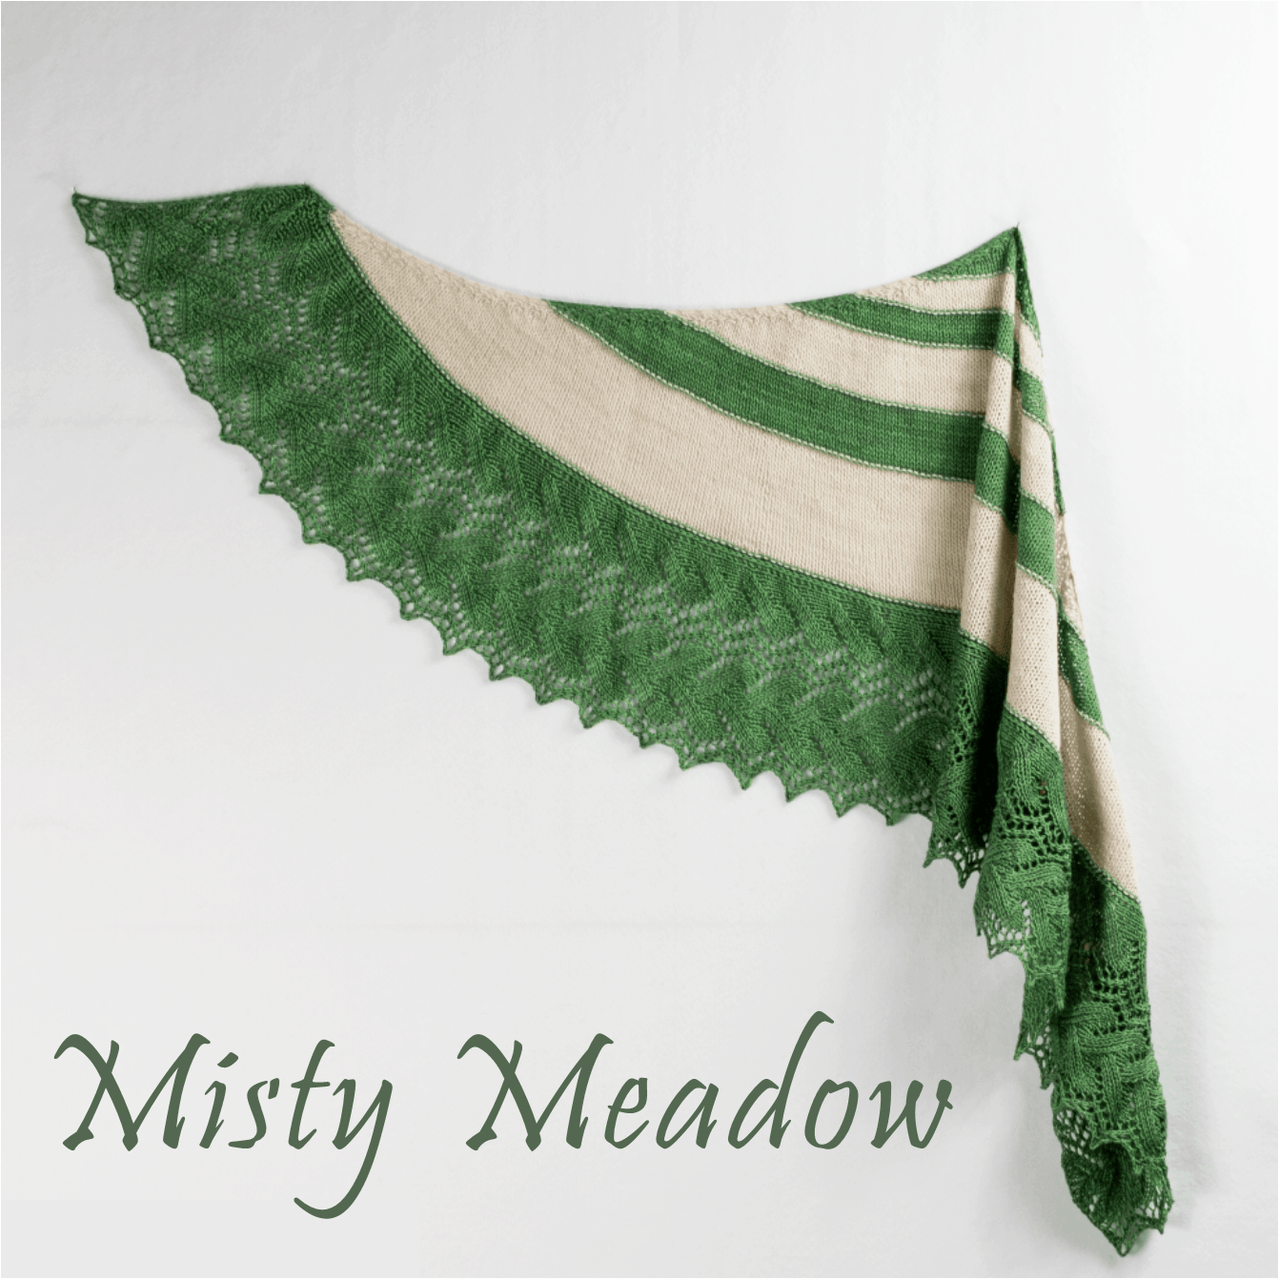 Misty Meadow Kit